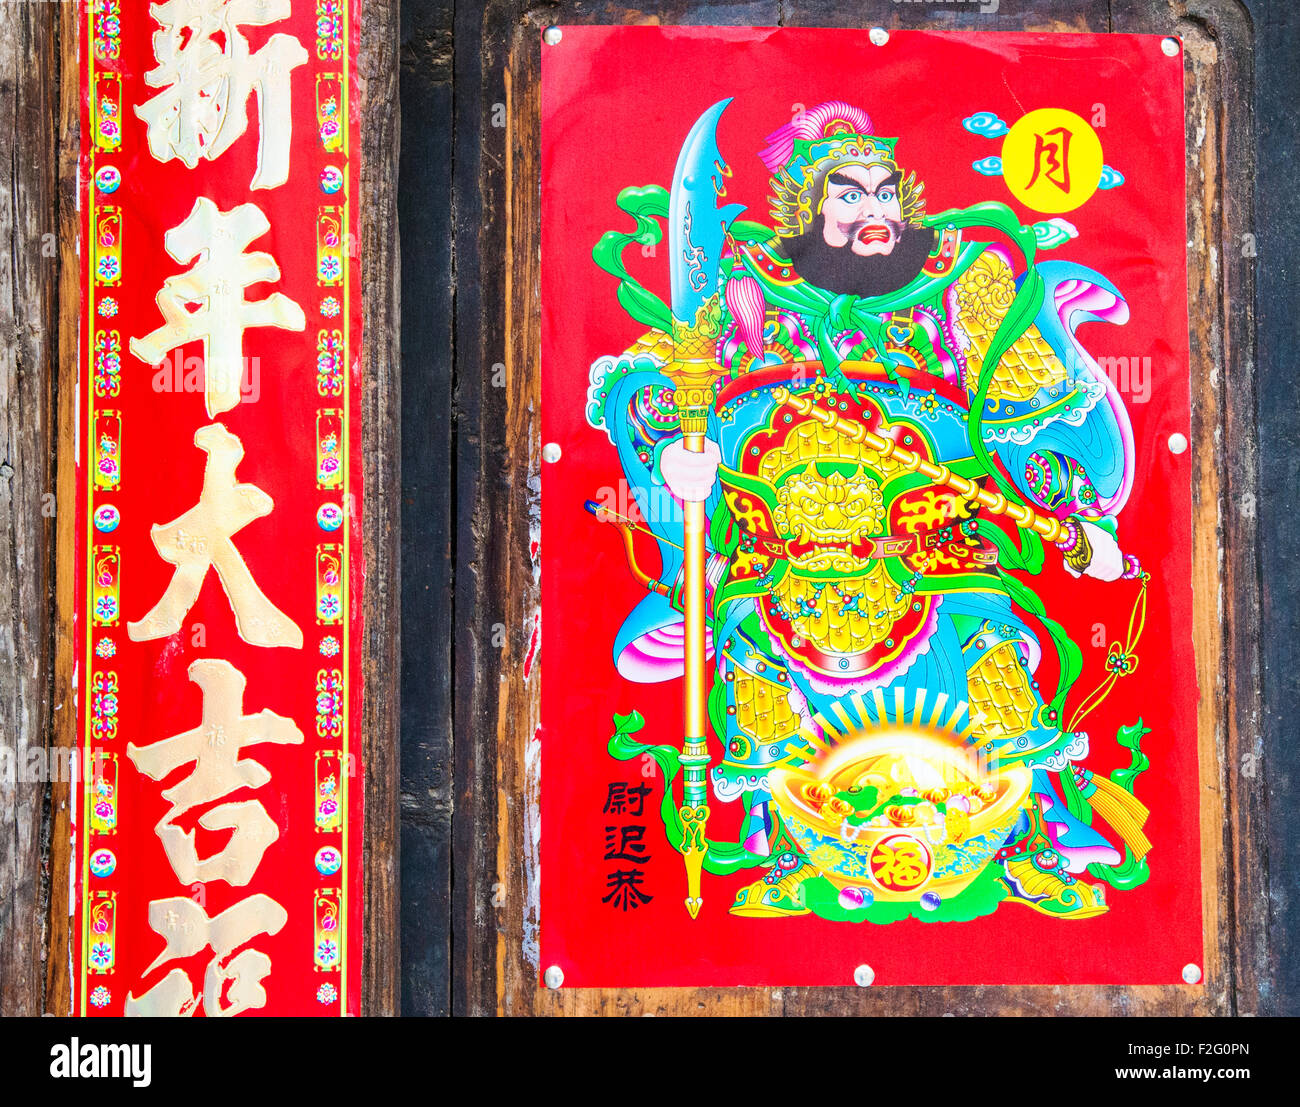 A Door god – traditional decoration on a door which is believed to keep evil spirits away, Yunnan, China Stock Photo